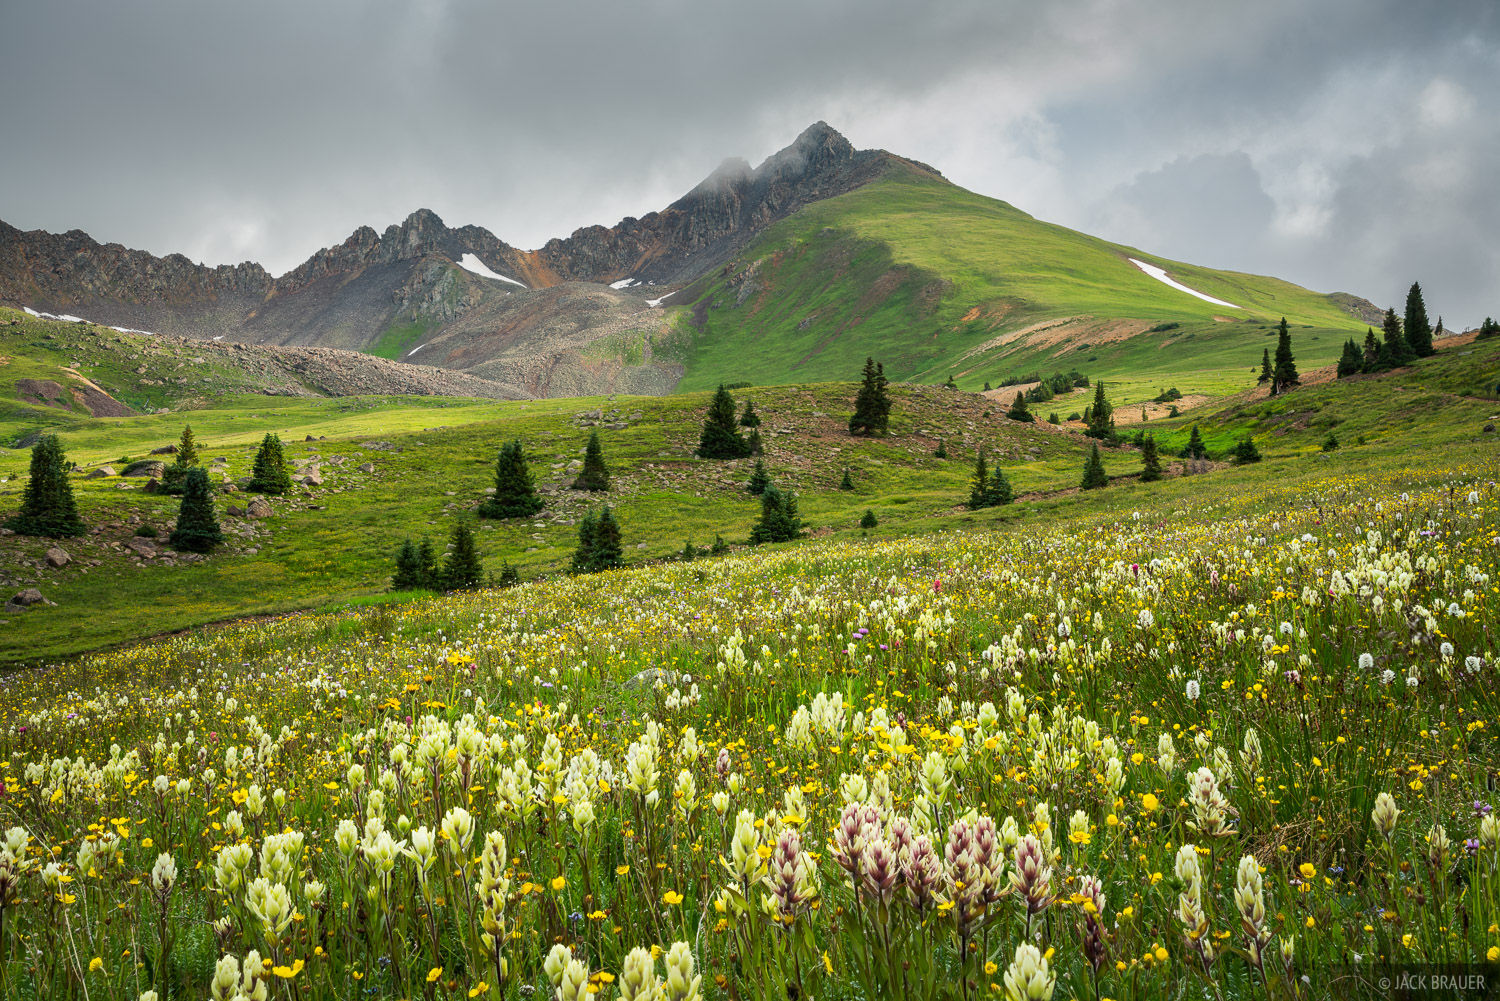 Colorado, Matterhorn Peak, San Juan Mountains, Uncompahgre Wilderness, wildflowers, photo